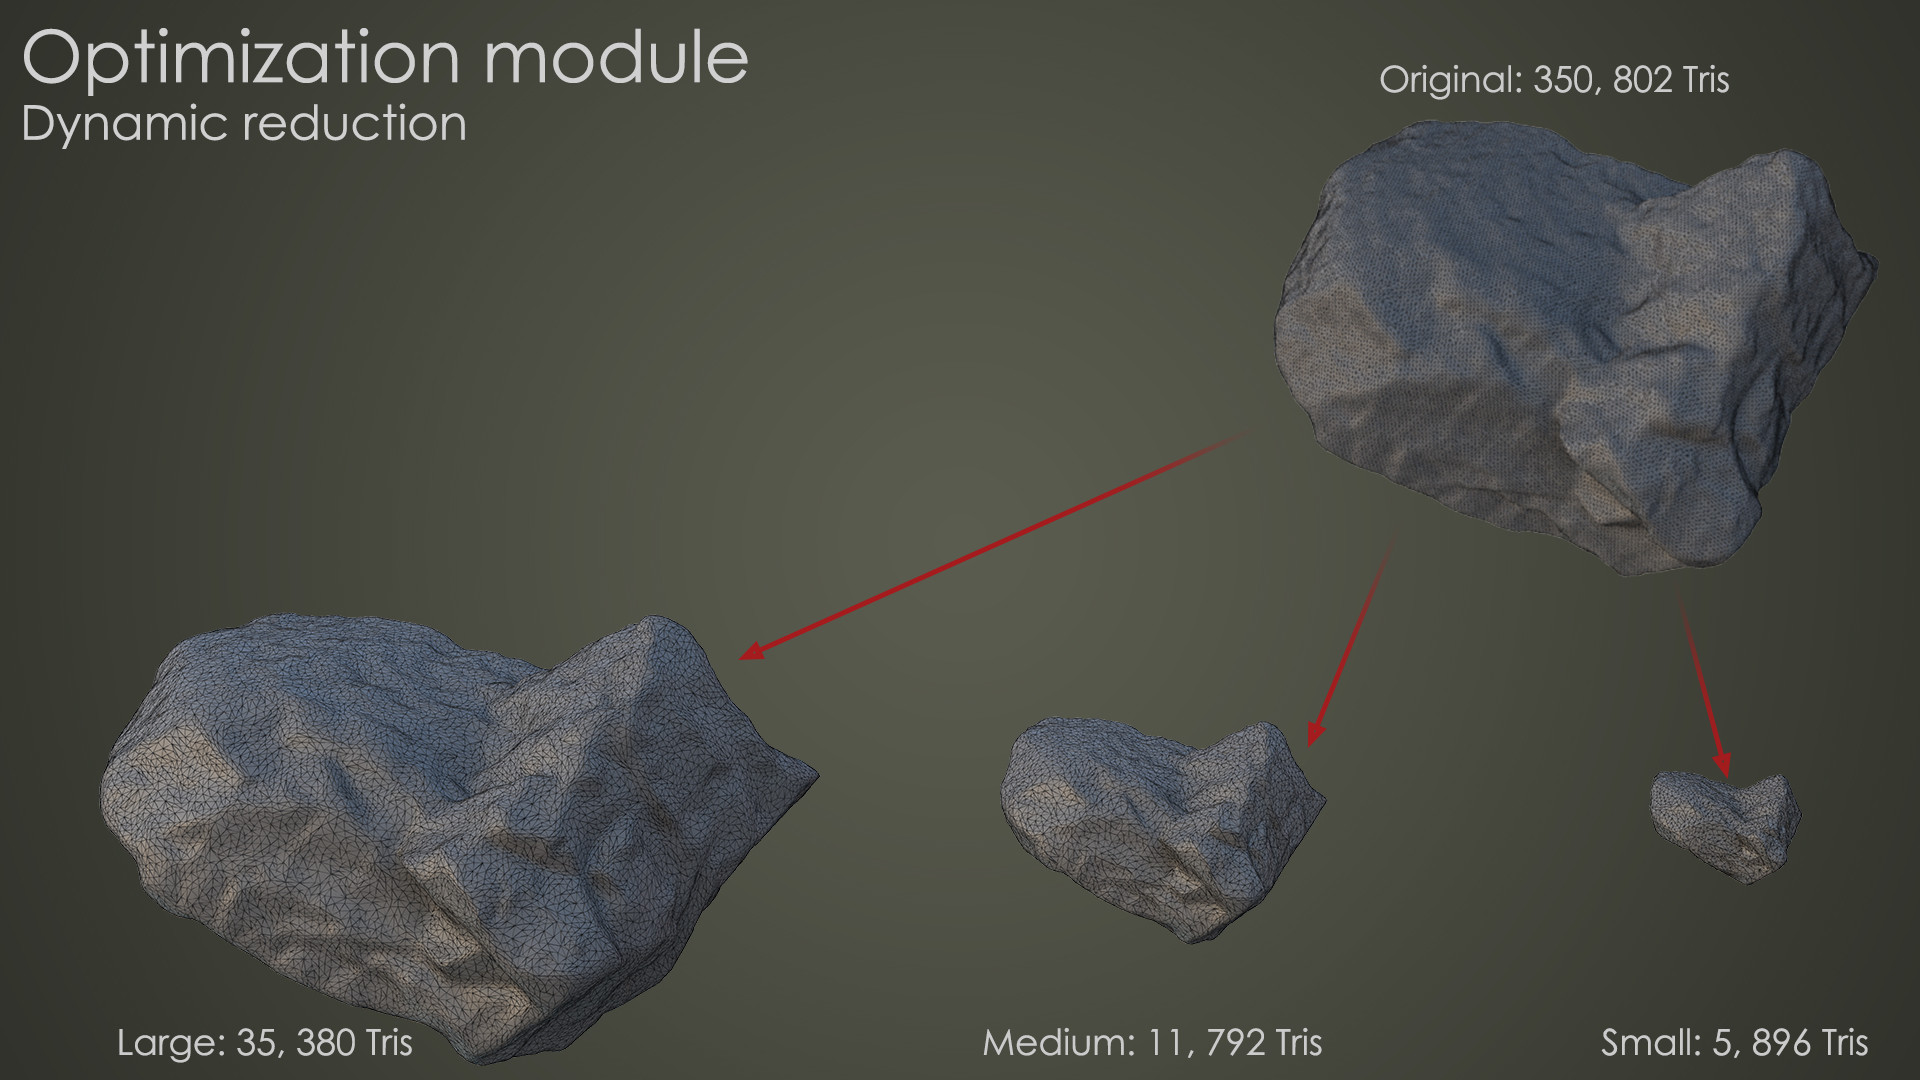 Using dynamic reduction to optimize objects according to scale